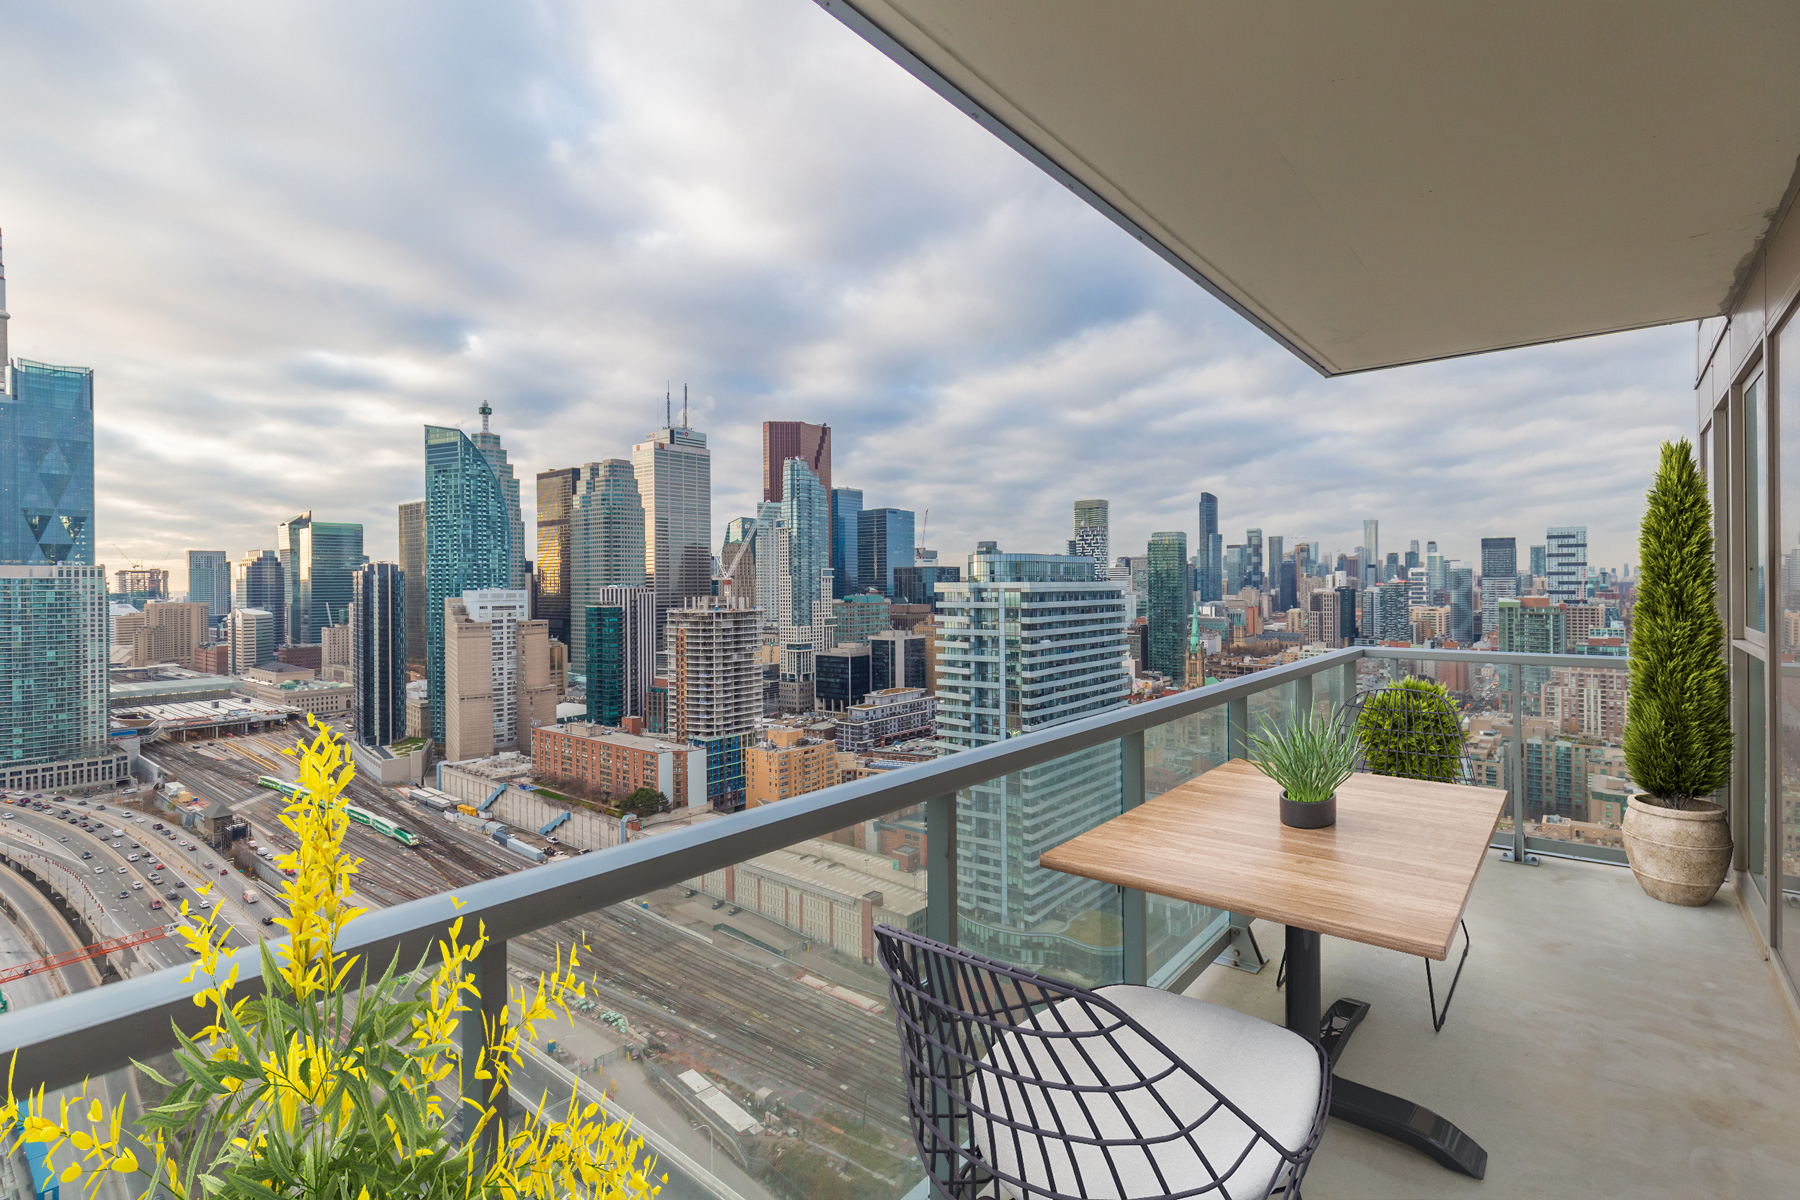 20 Richardson St balcony with glass panels and virtually staged patio furniture.